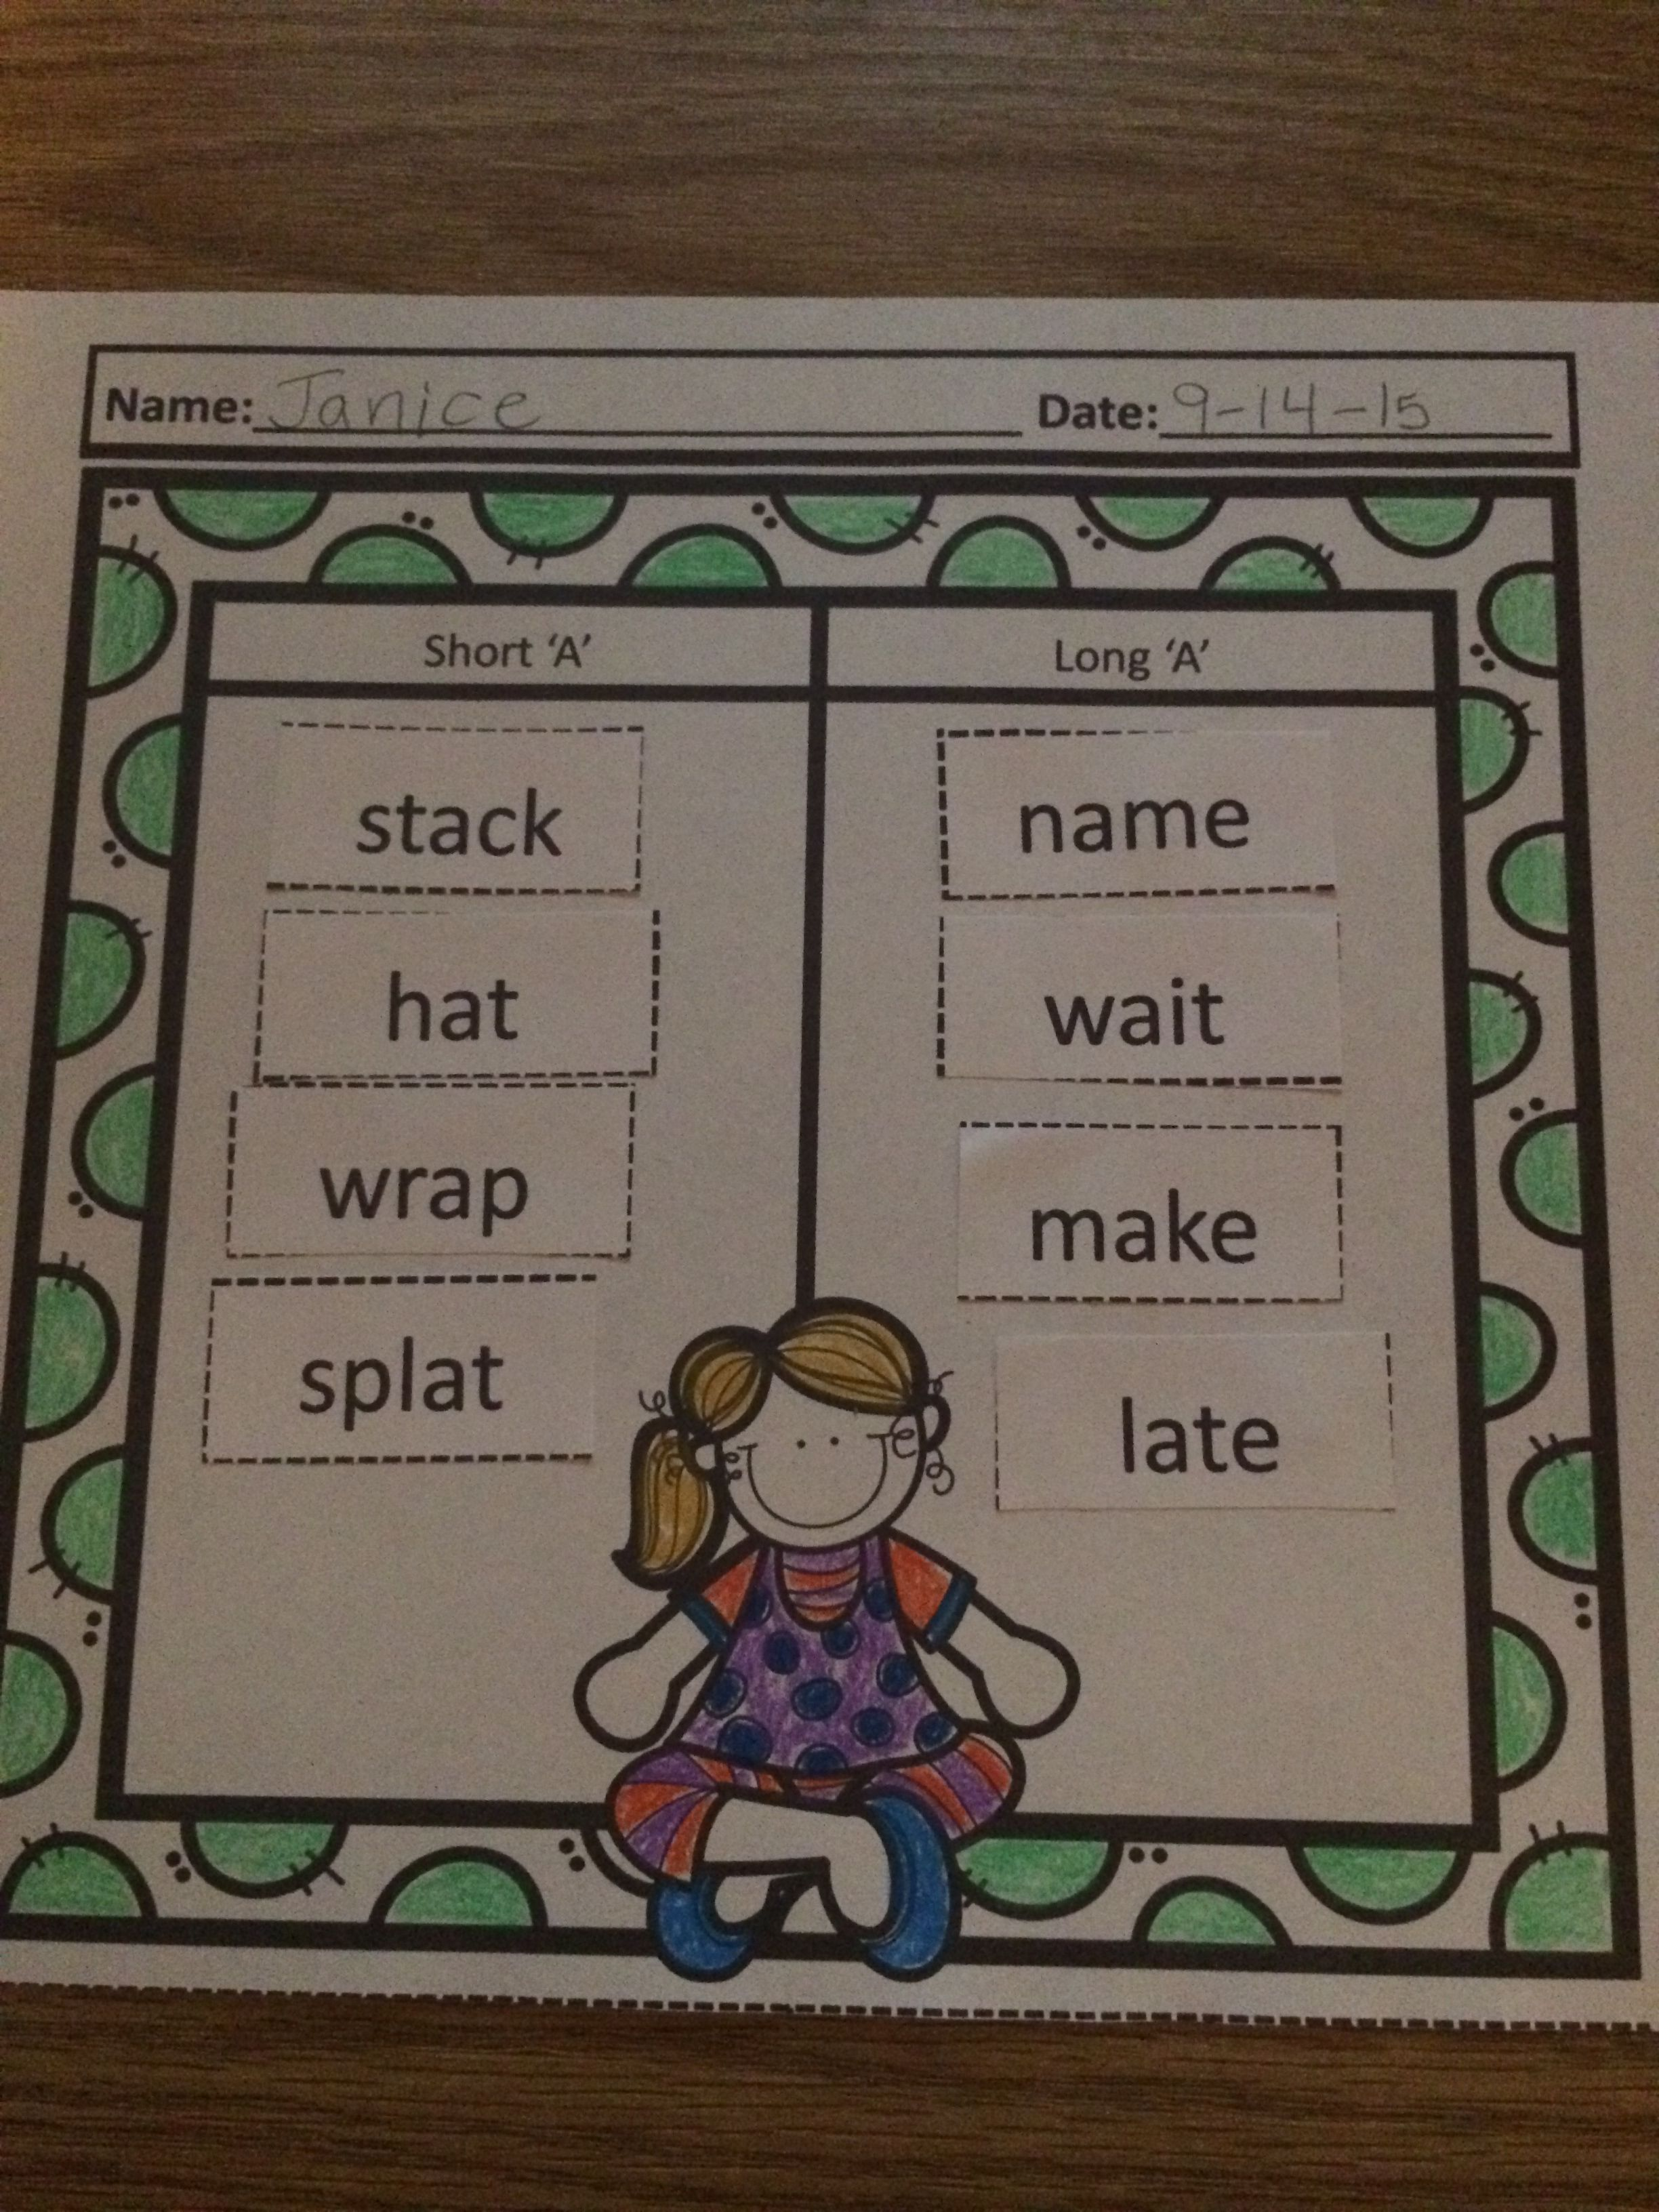 Long Vowel And Short Vowel Sort With Images